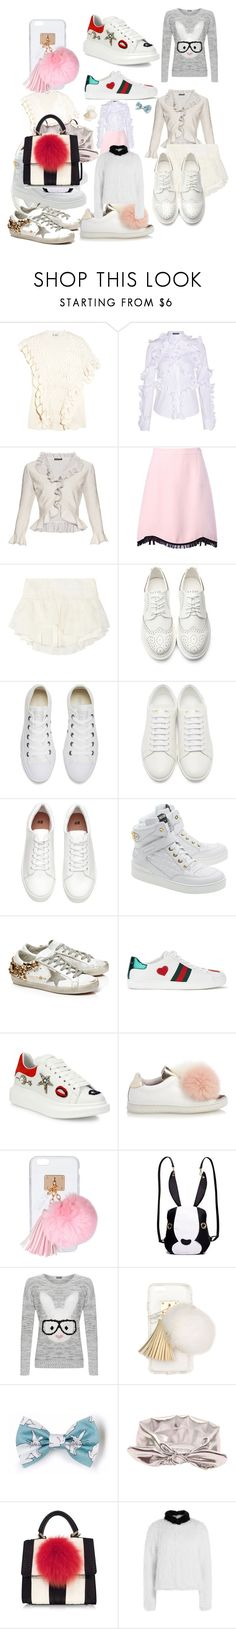 """White rabbit collection working draft"" by buzzingbee13 ❤ liked on Polyvore featuring 3.1 Phillip Lim, Alexander McQueen, Moschino, Isabel Marant, Converse, Yves Saint Laurent, H&M, Golden Goose, Gucci and Joshua's"